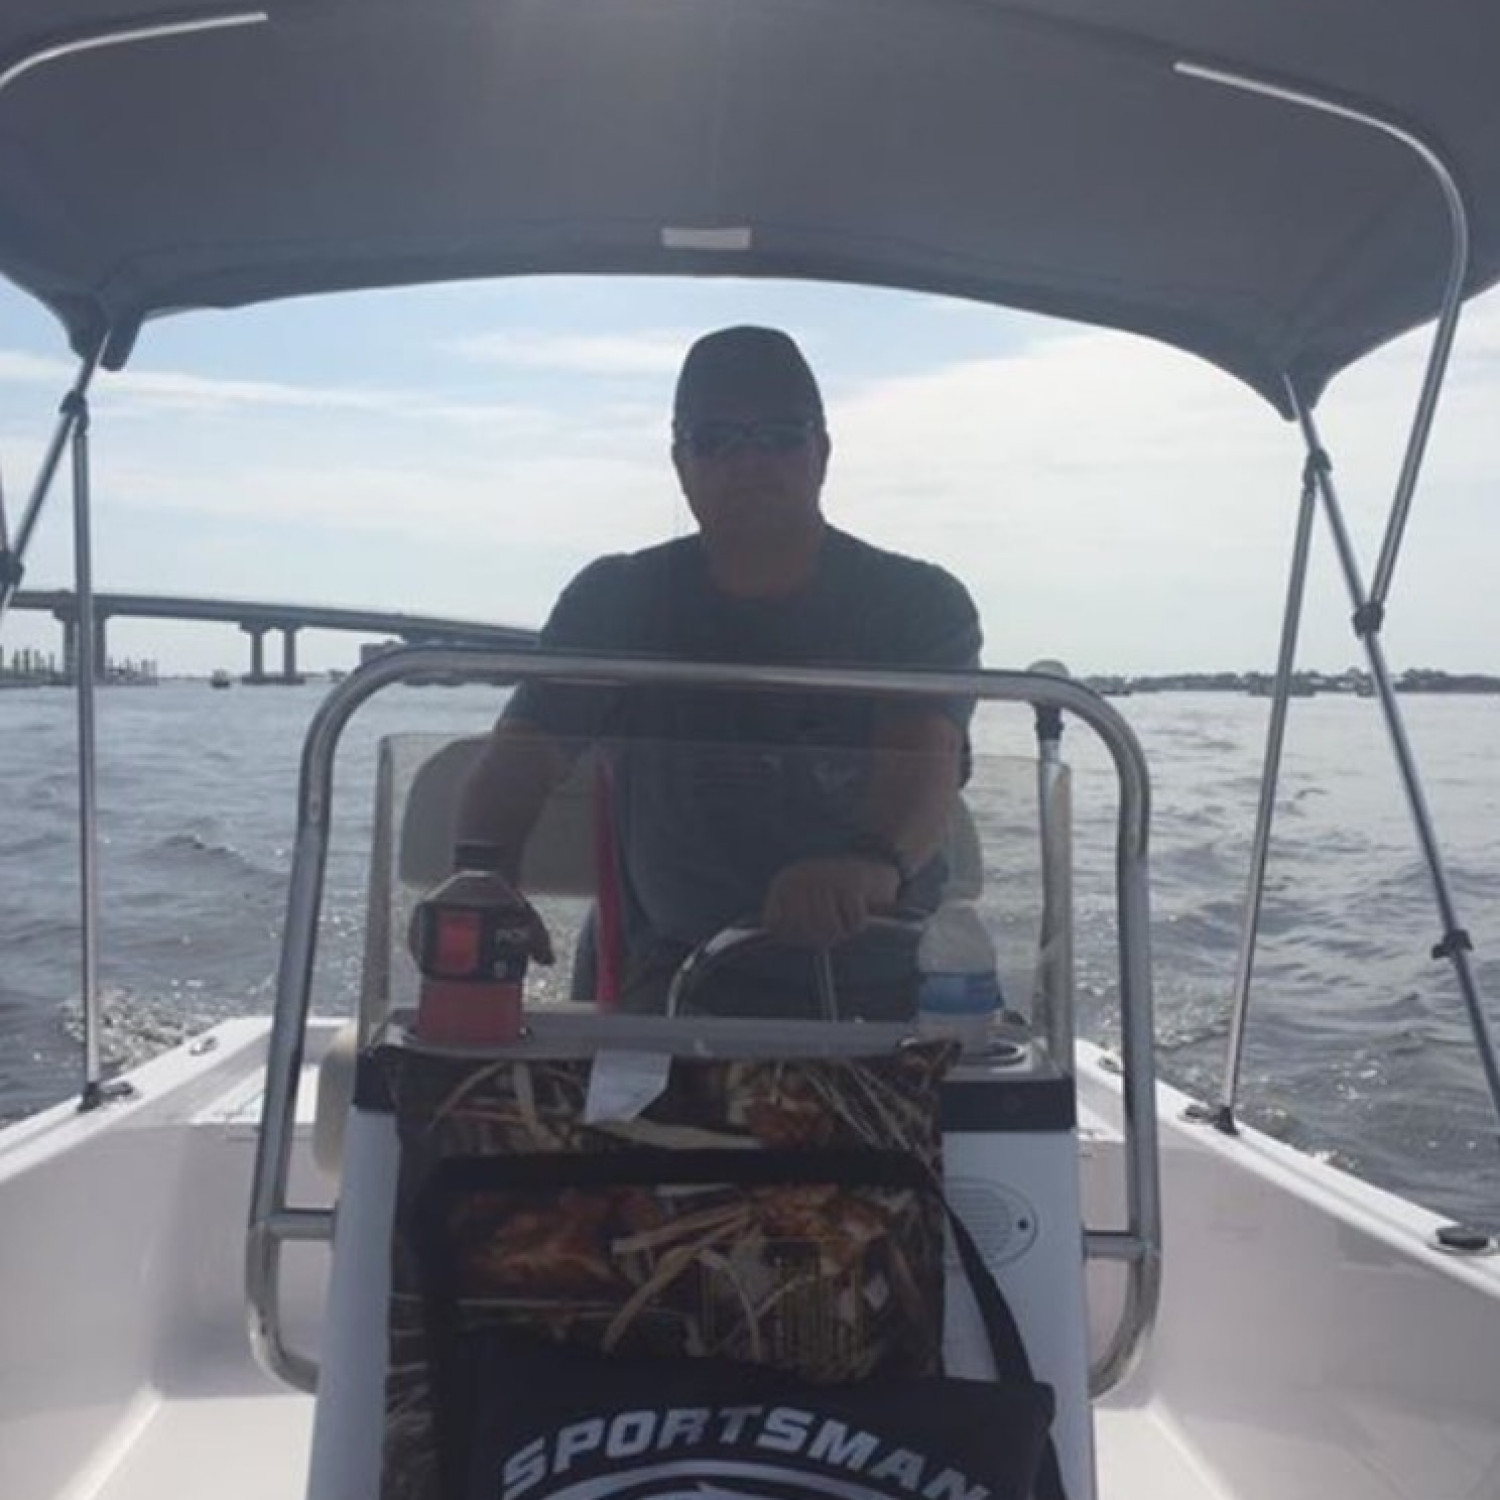 Title: Maiden Voyage - On board their Sportsman Island Reef 17 Center Console - Location: Orange Beach, Alabama. Participating in the Photo Contest #SportsmanNovember2017